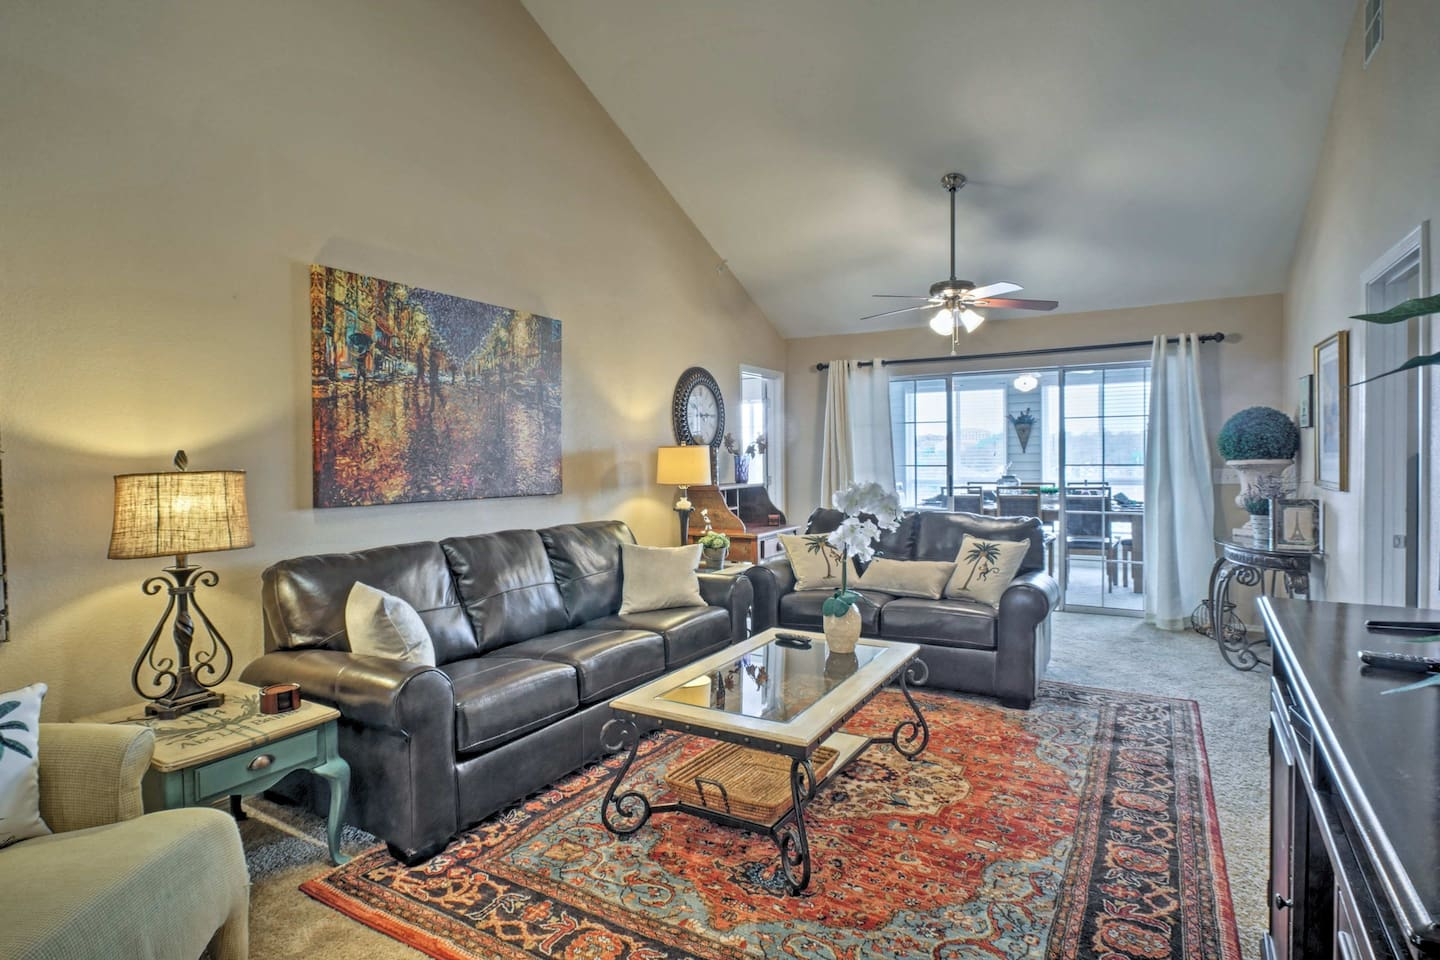 Plan your next family vacation at this beautiful Branson condo.